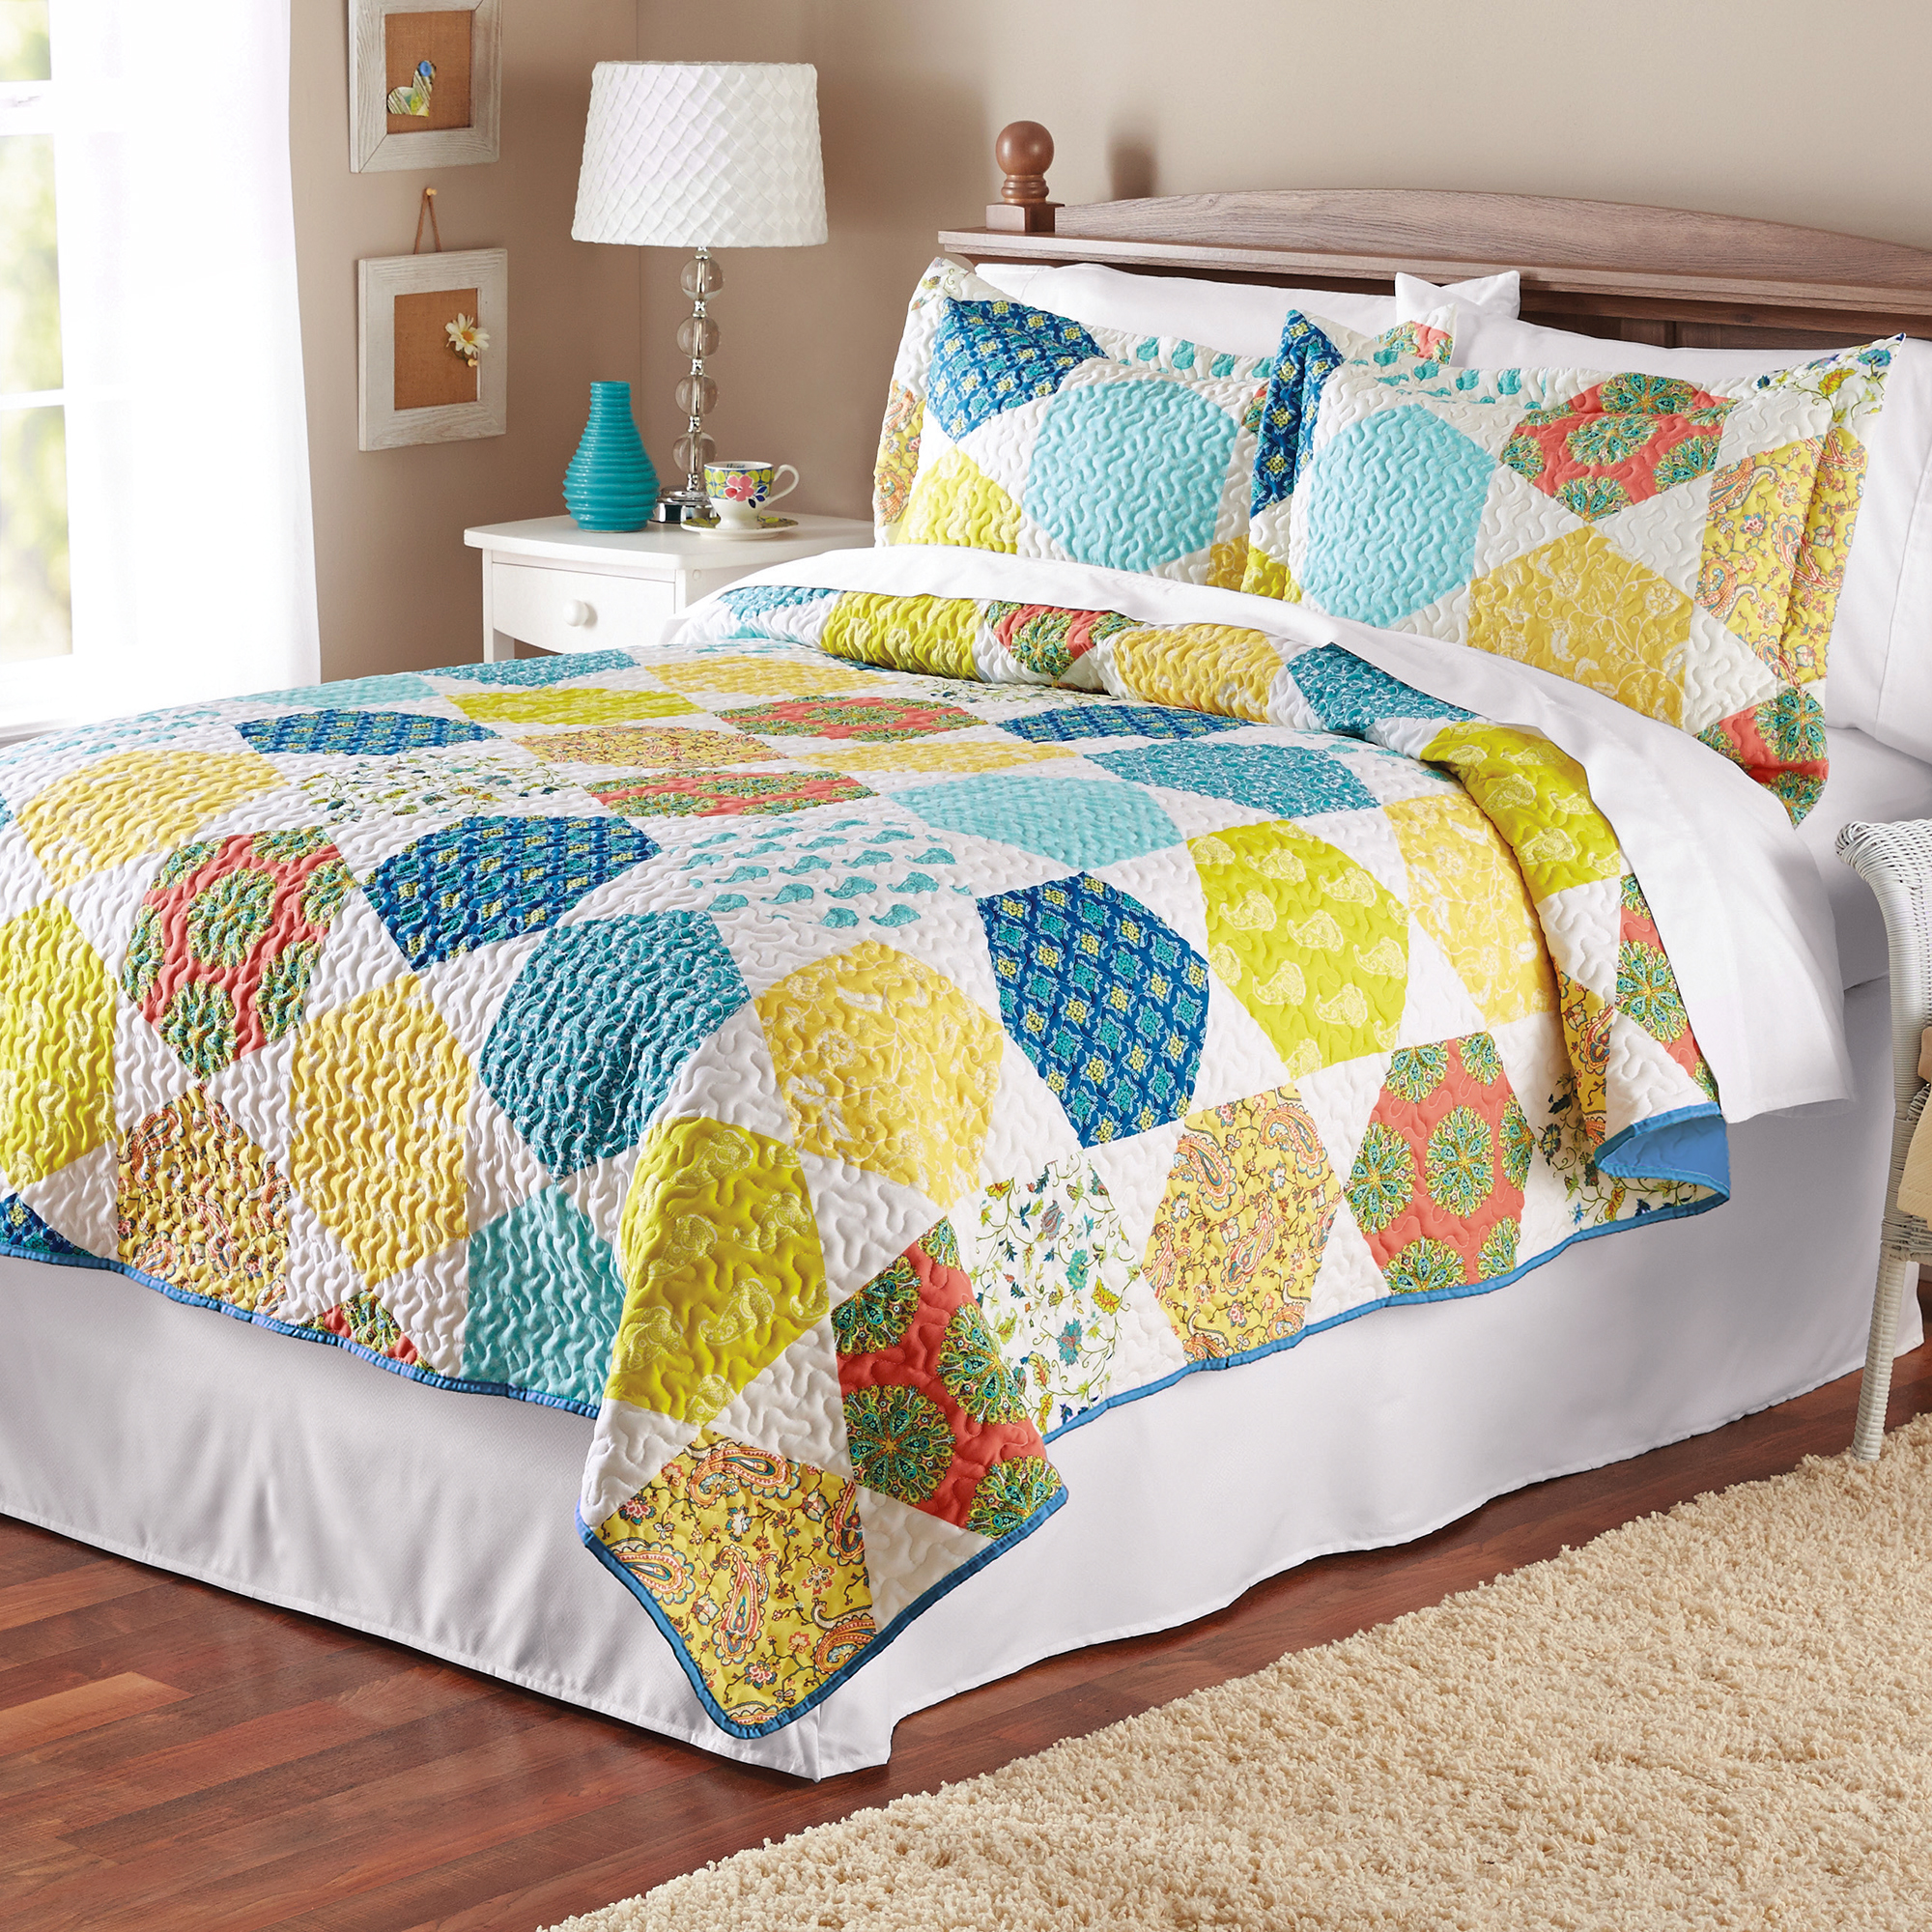 Mainstays Multicolor Hexagon Quilt Collection by JIANDE CITY YAOXIN KNITTING & TEXTILE CO. LTD